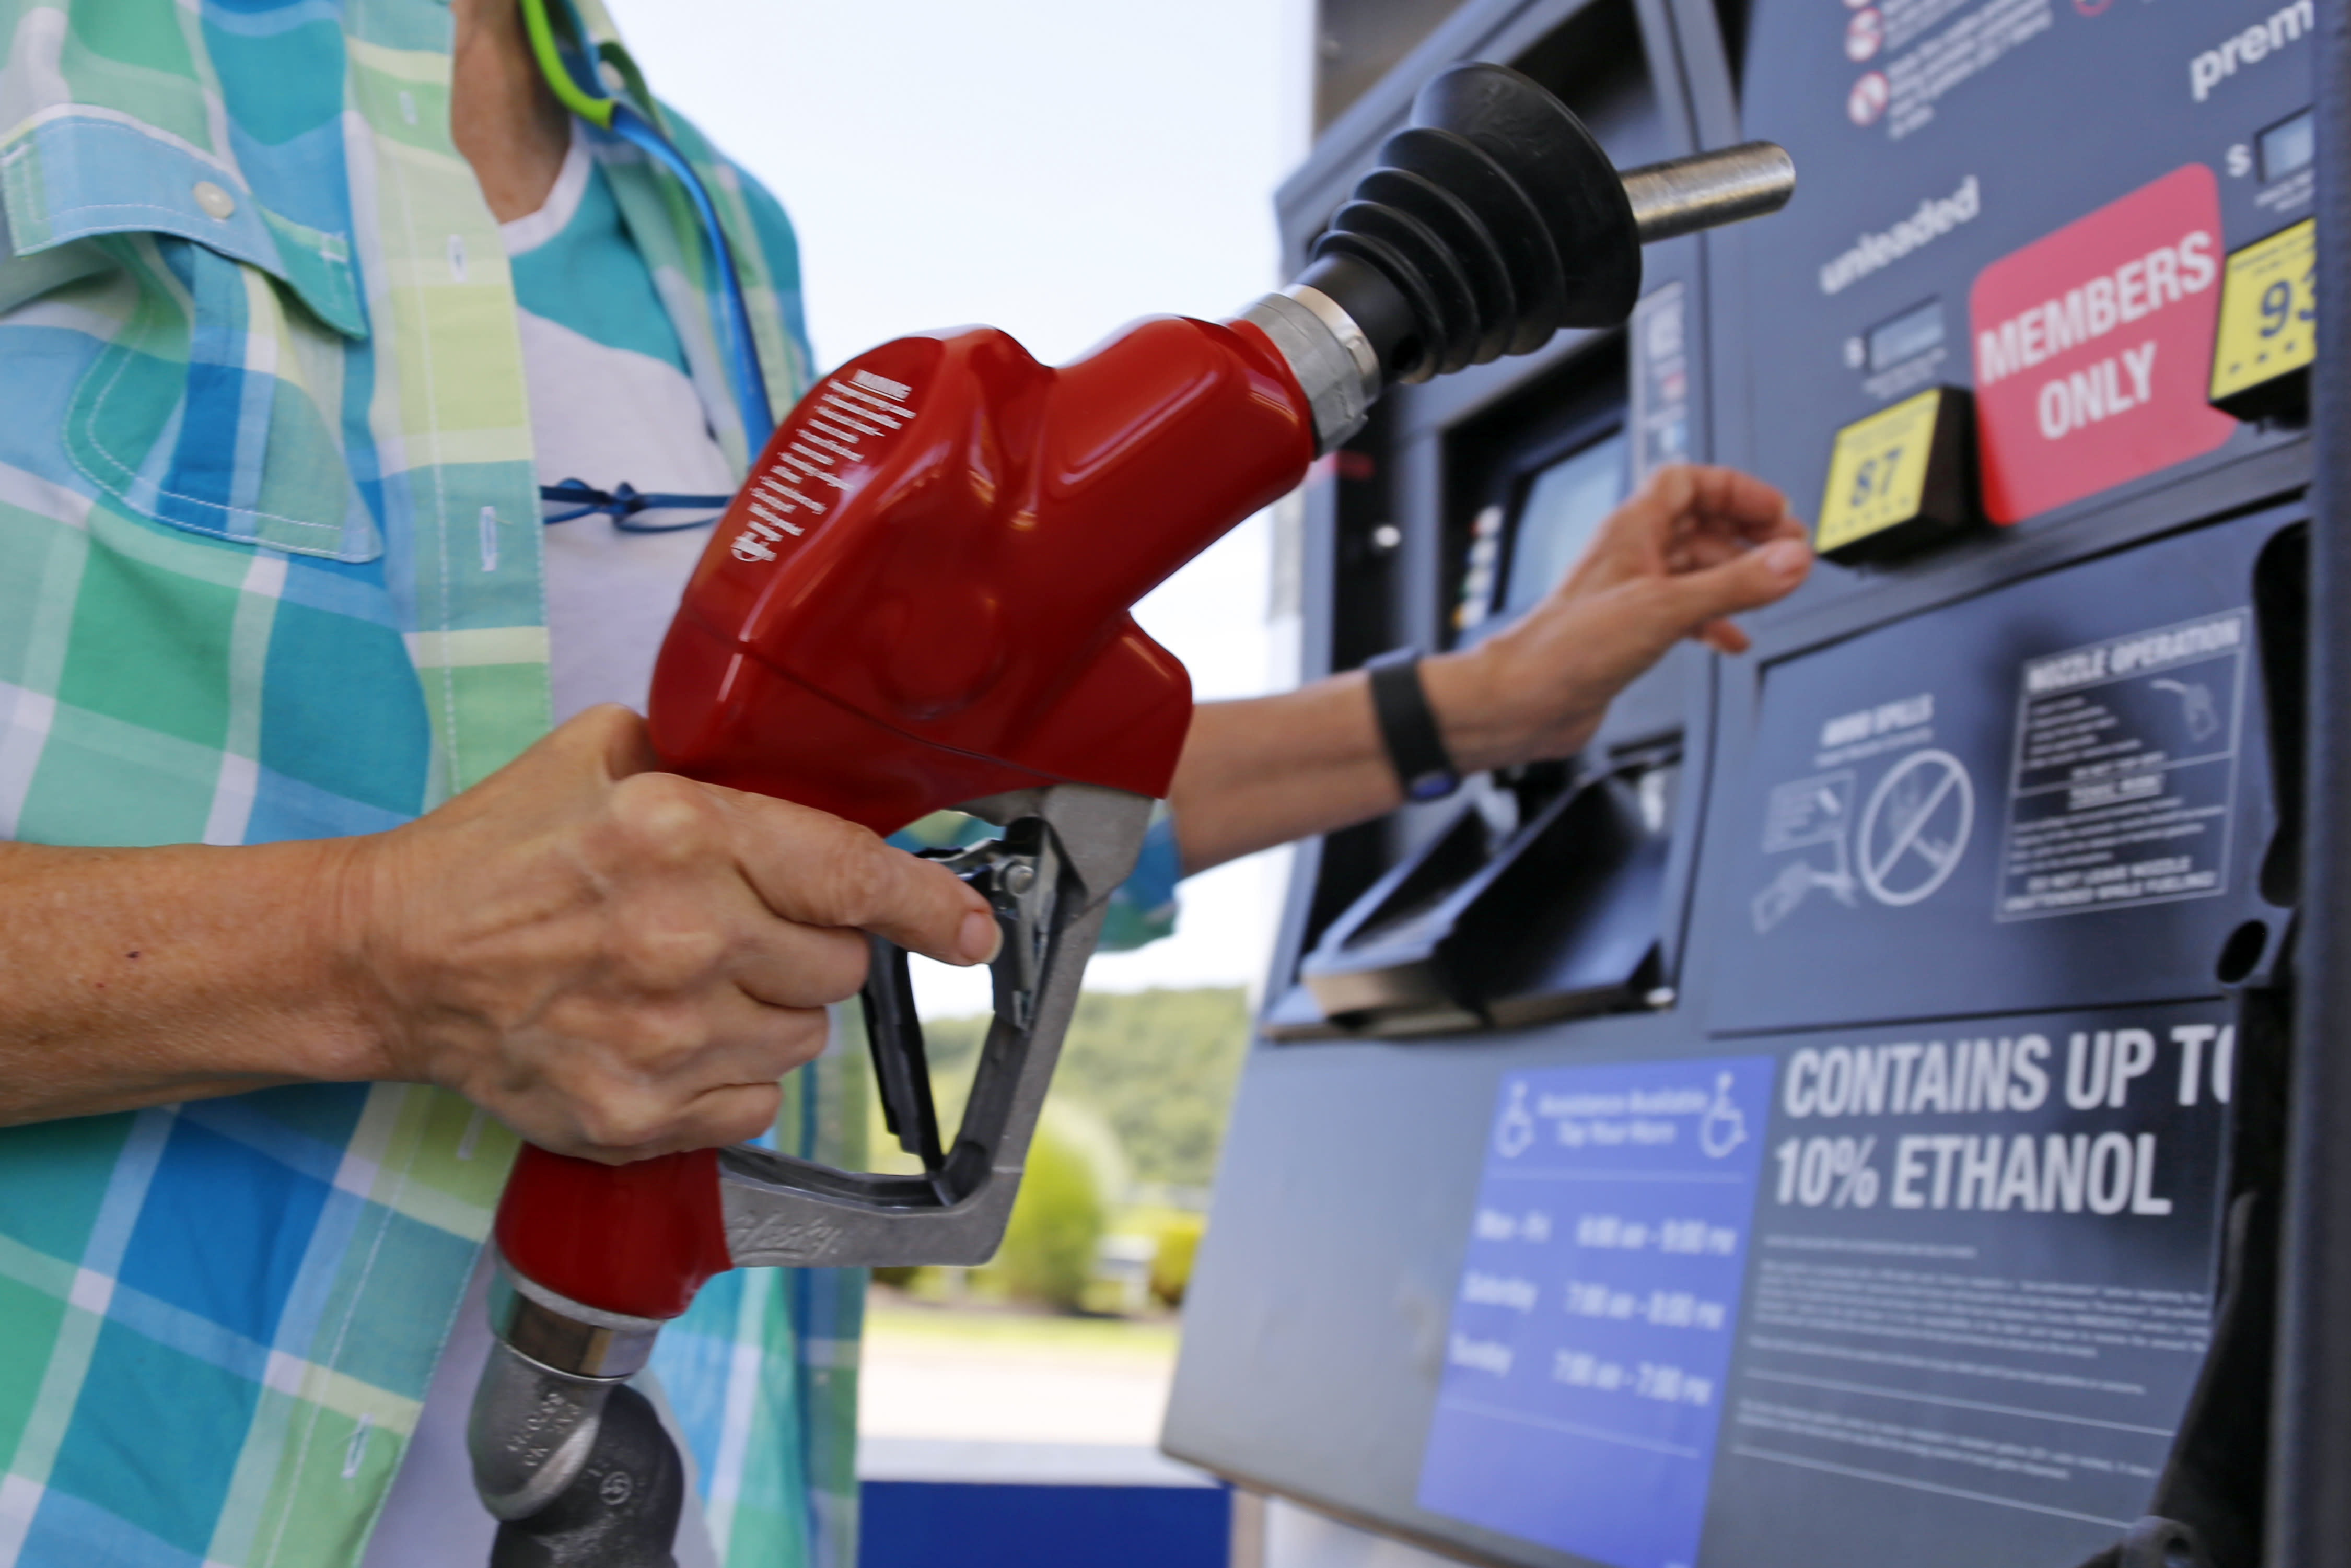 Energy agency says gasoline will average under $2 in 2016